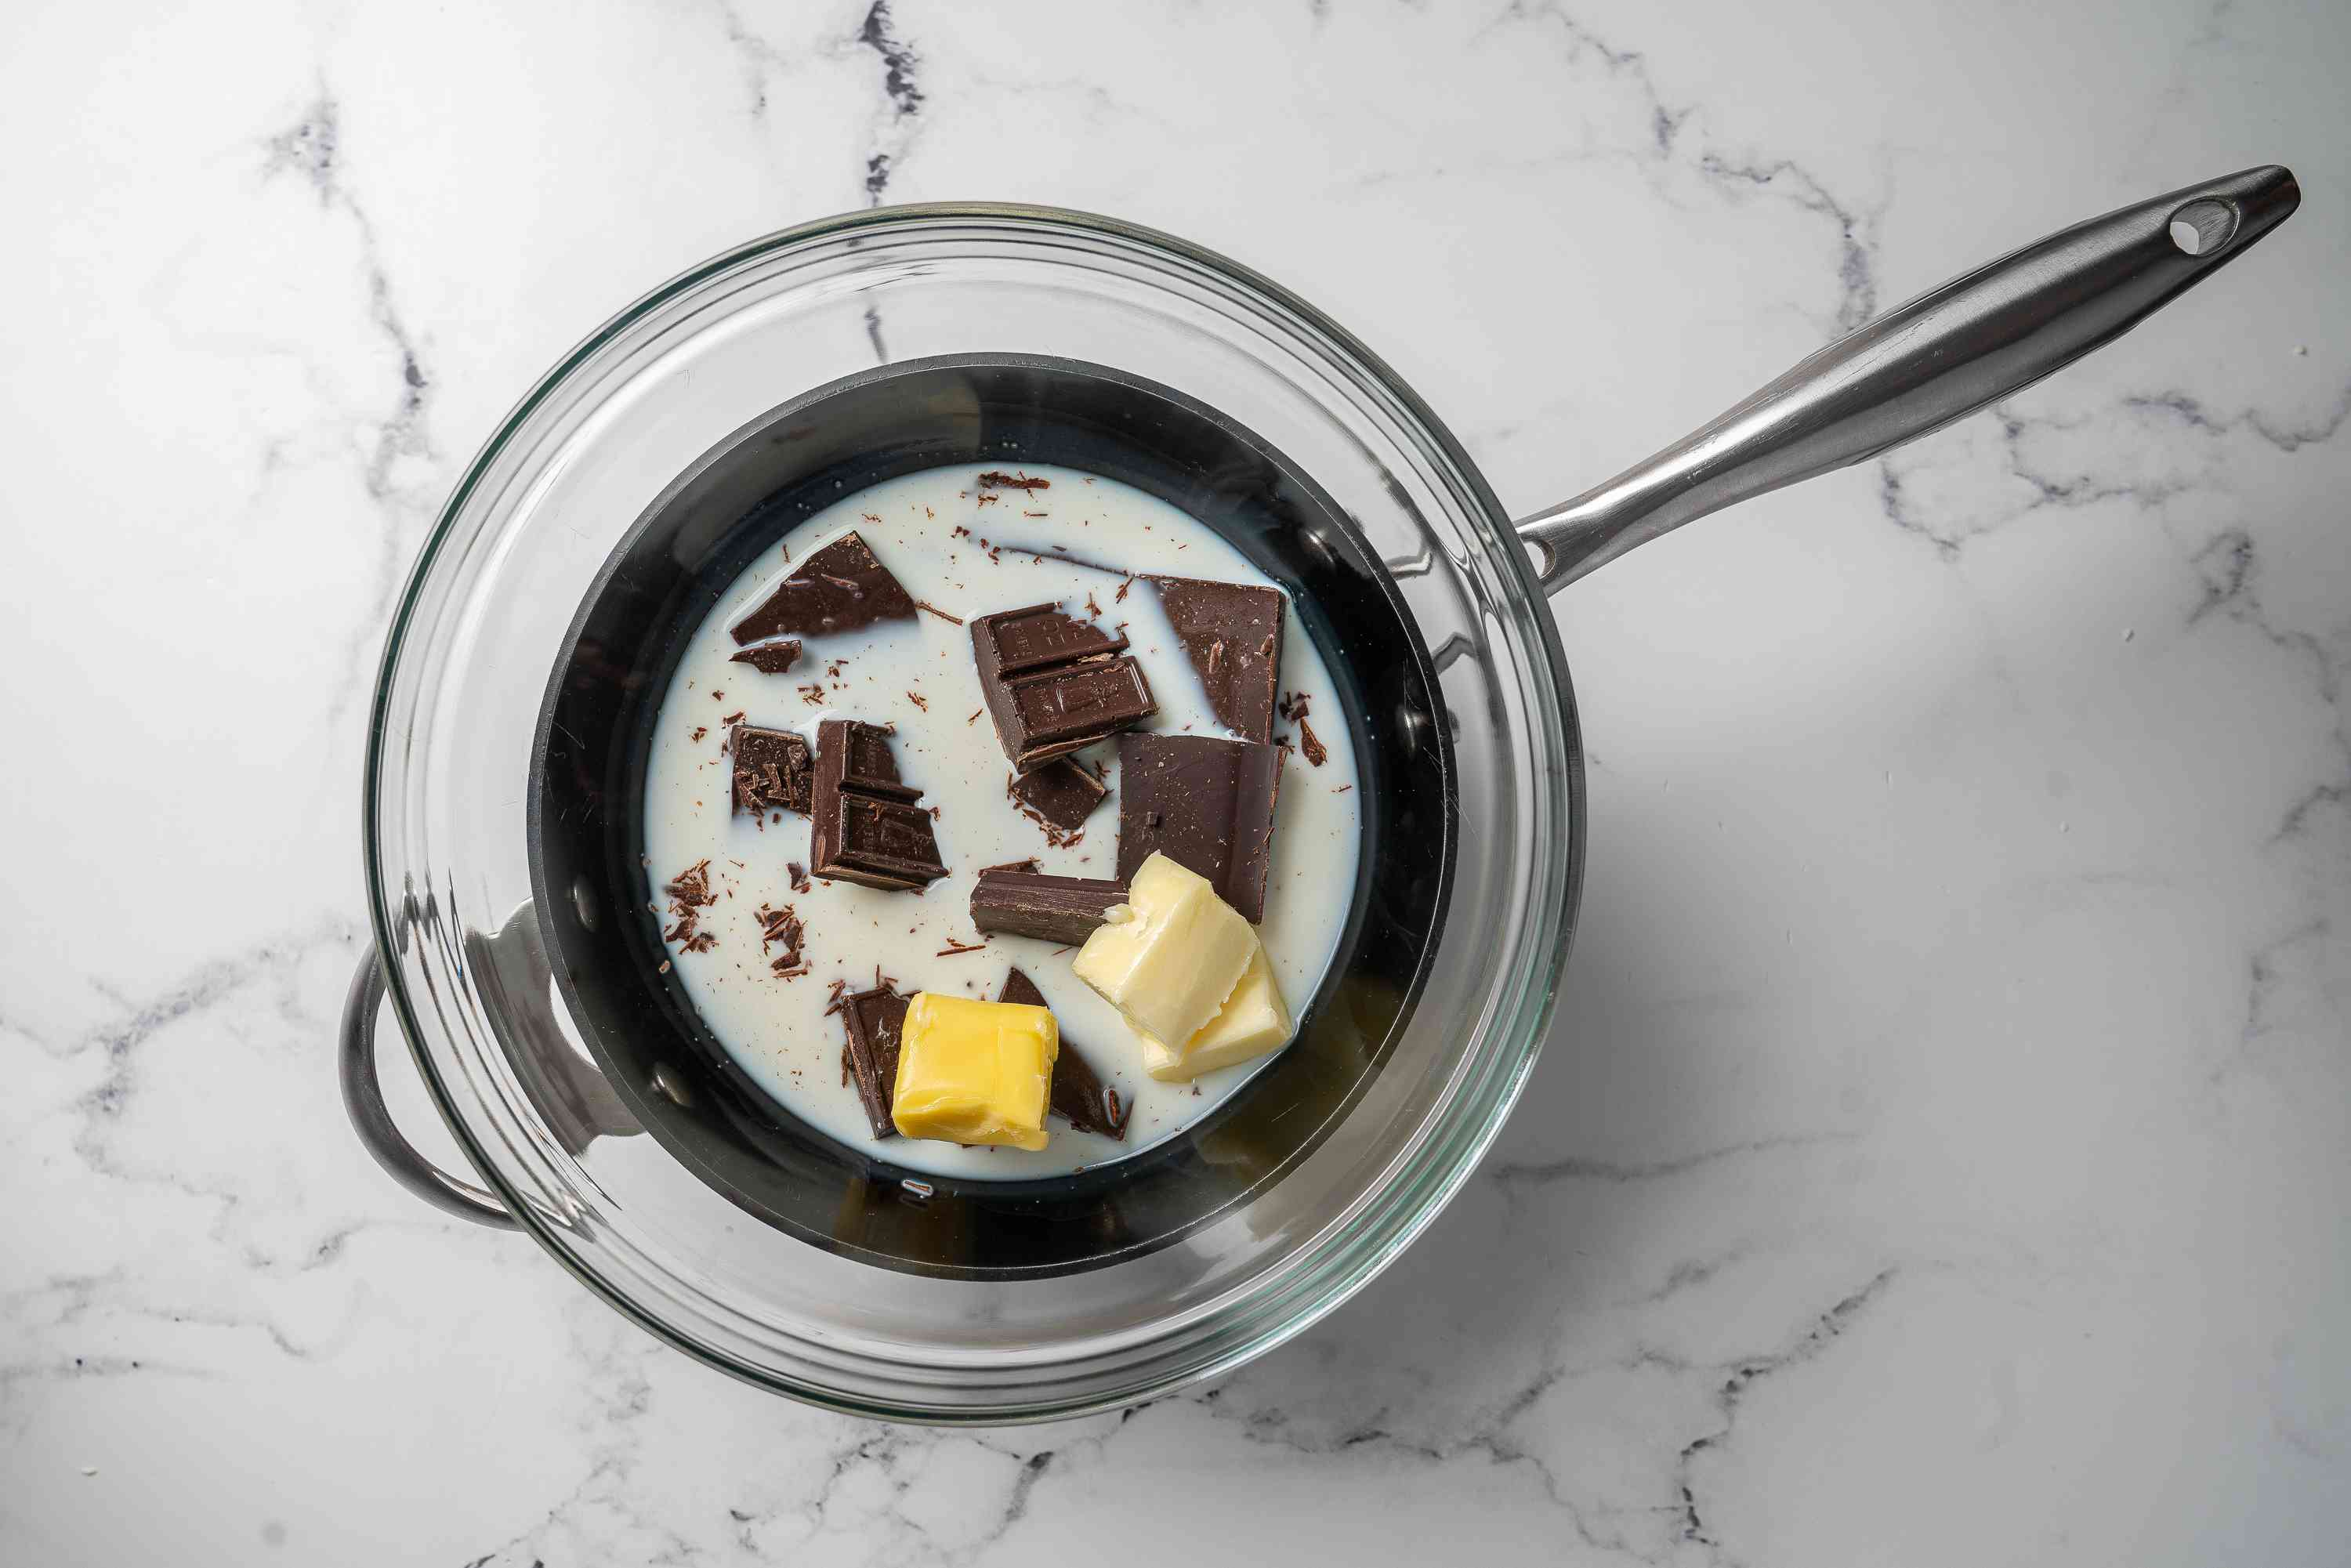 Chocolate, milk, and butter melting